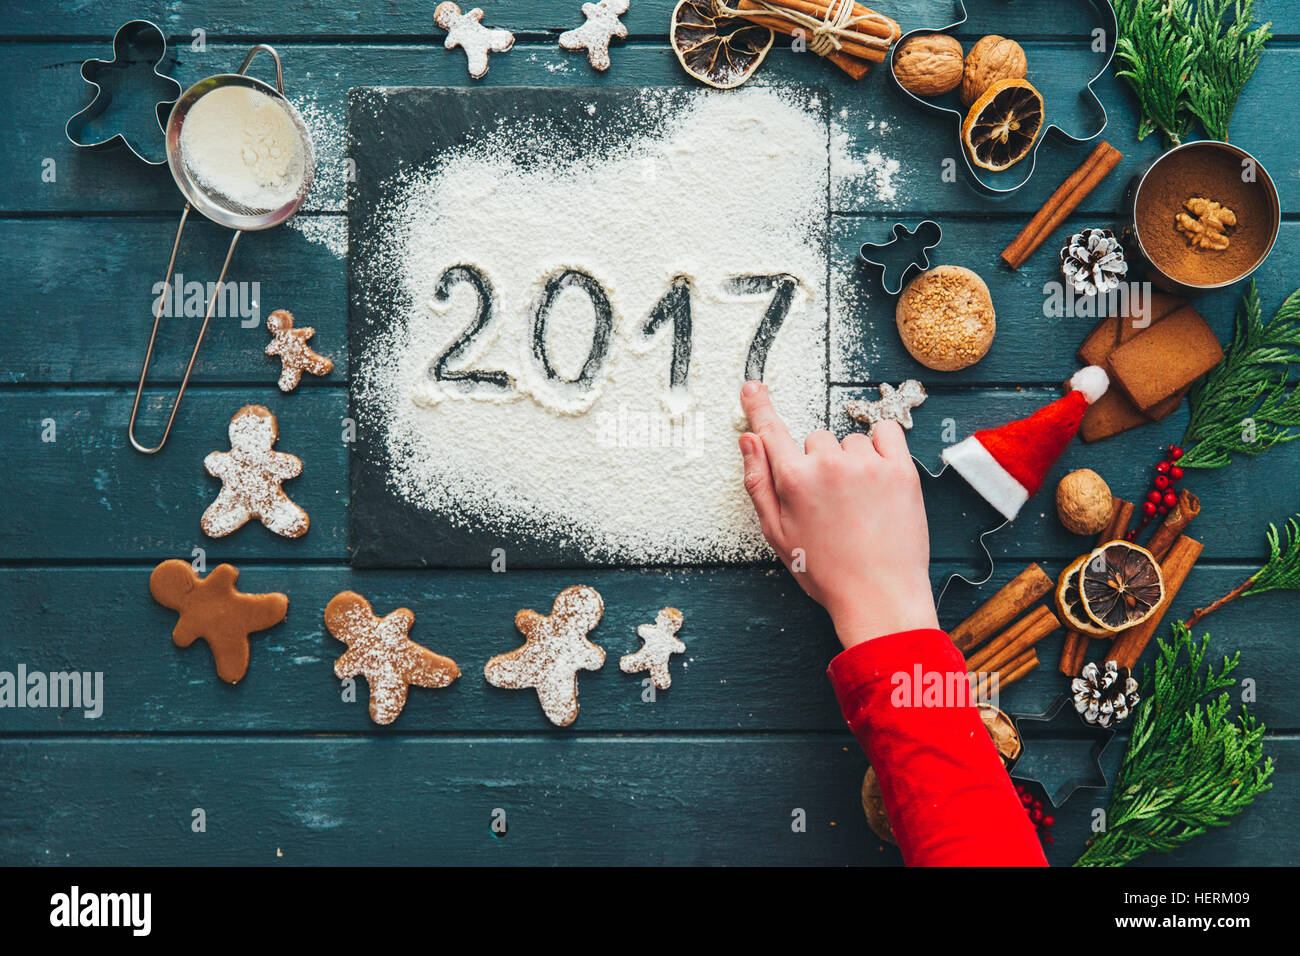 Girl making gingerbread men cookies and writing 2017 in icing sugar - Stock Image